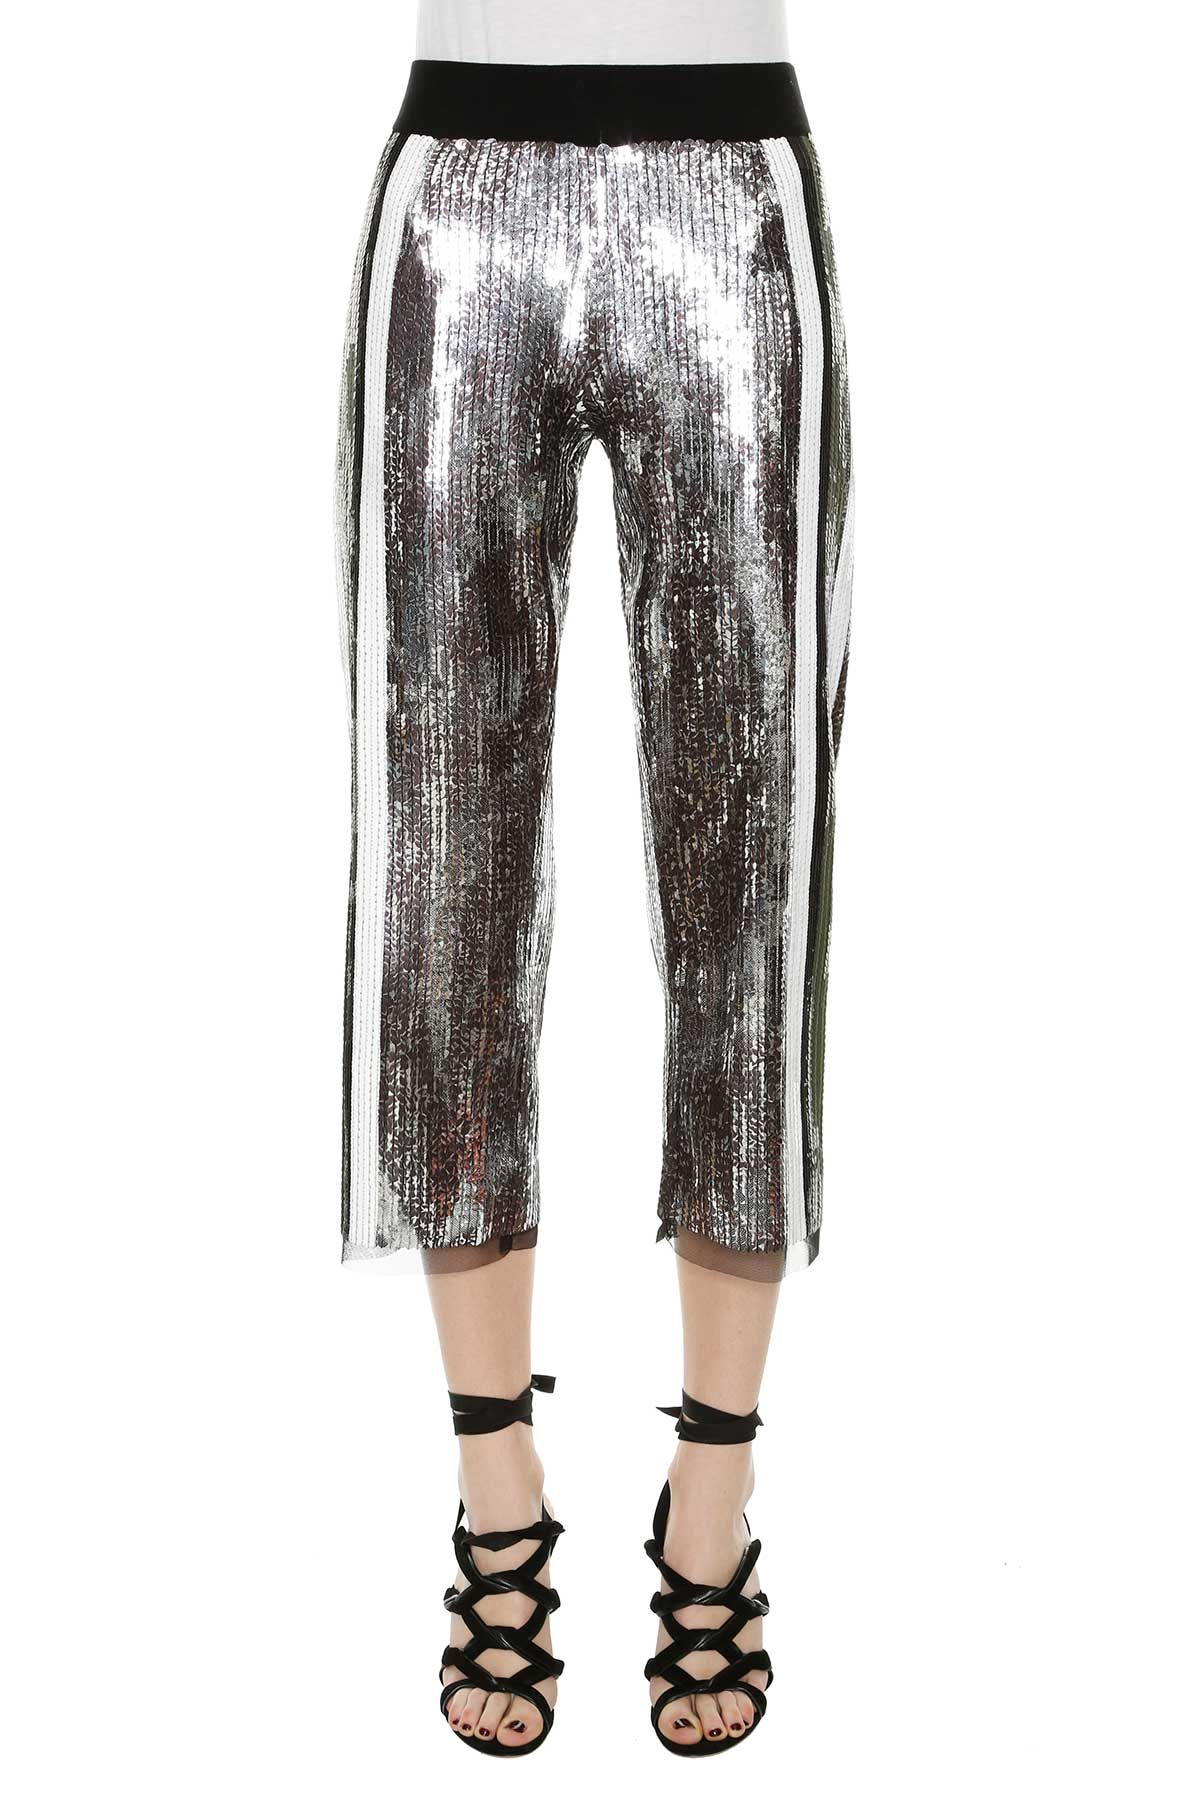 Aviu Paillettes Cropped Pants